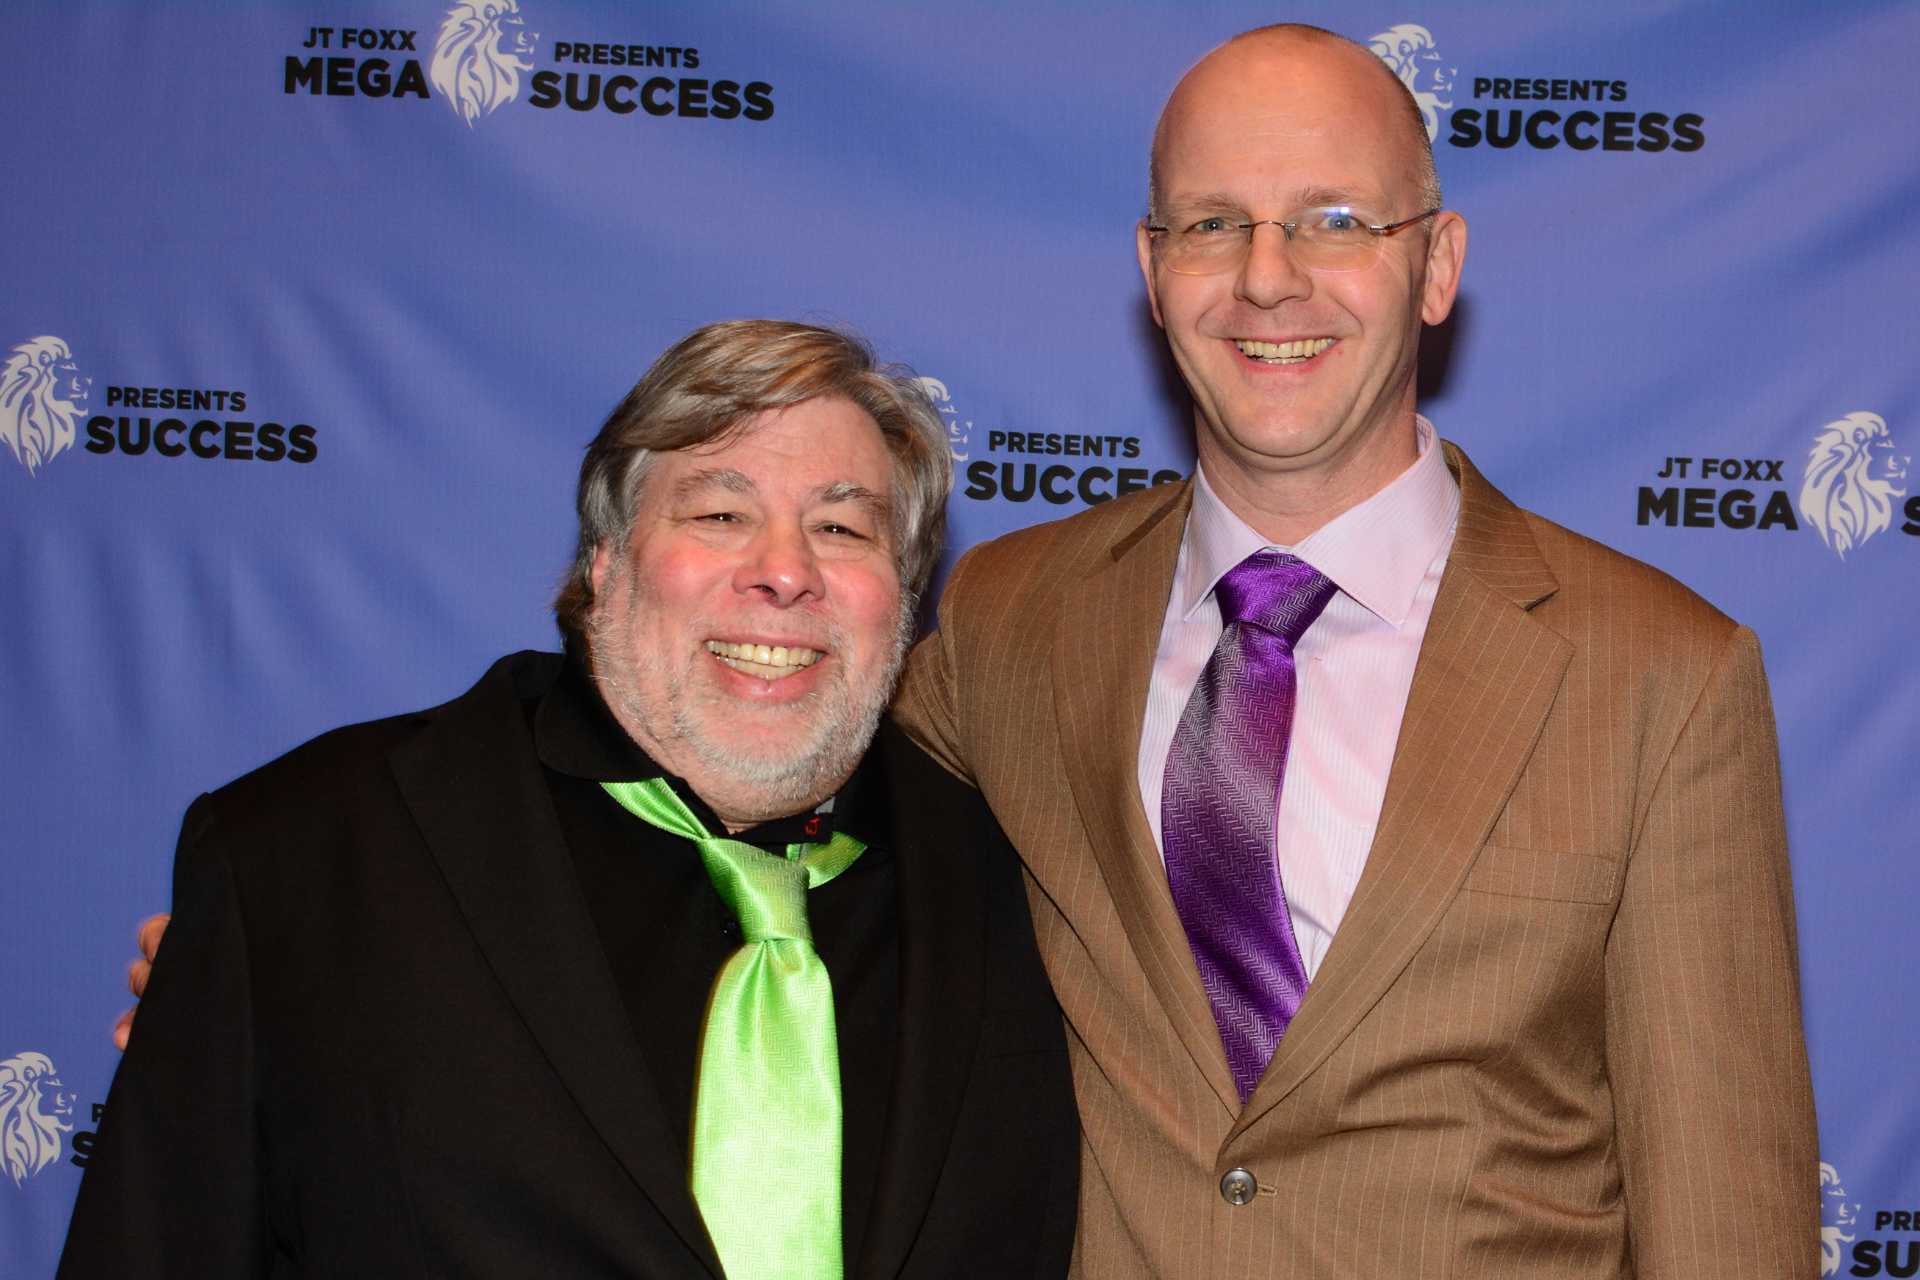 Steve Wozniak at Megasuccess 2017 with Erwin Wils